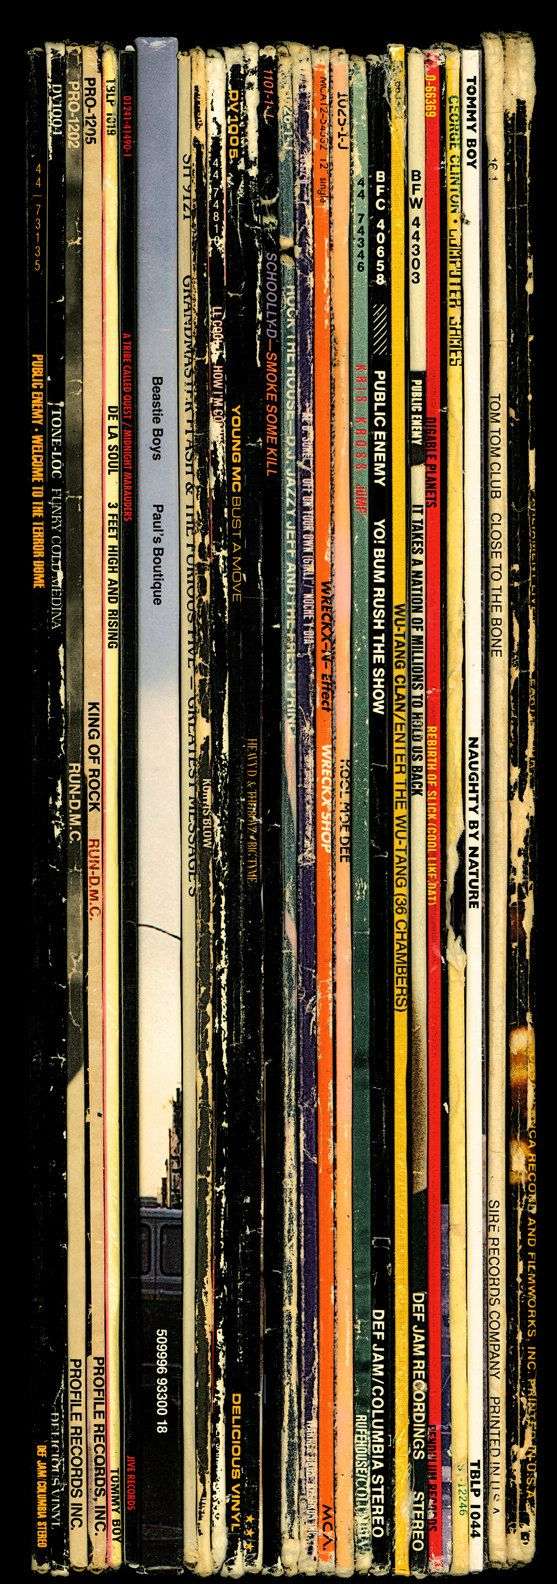 """Hip Hop Spines by Bughouse. Digitally printed to archival standards using fine art canvas and pigmented inks 60"""" x 22"""" Secession Art & Design"""